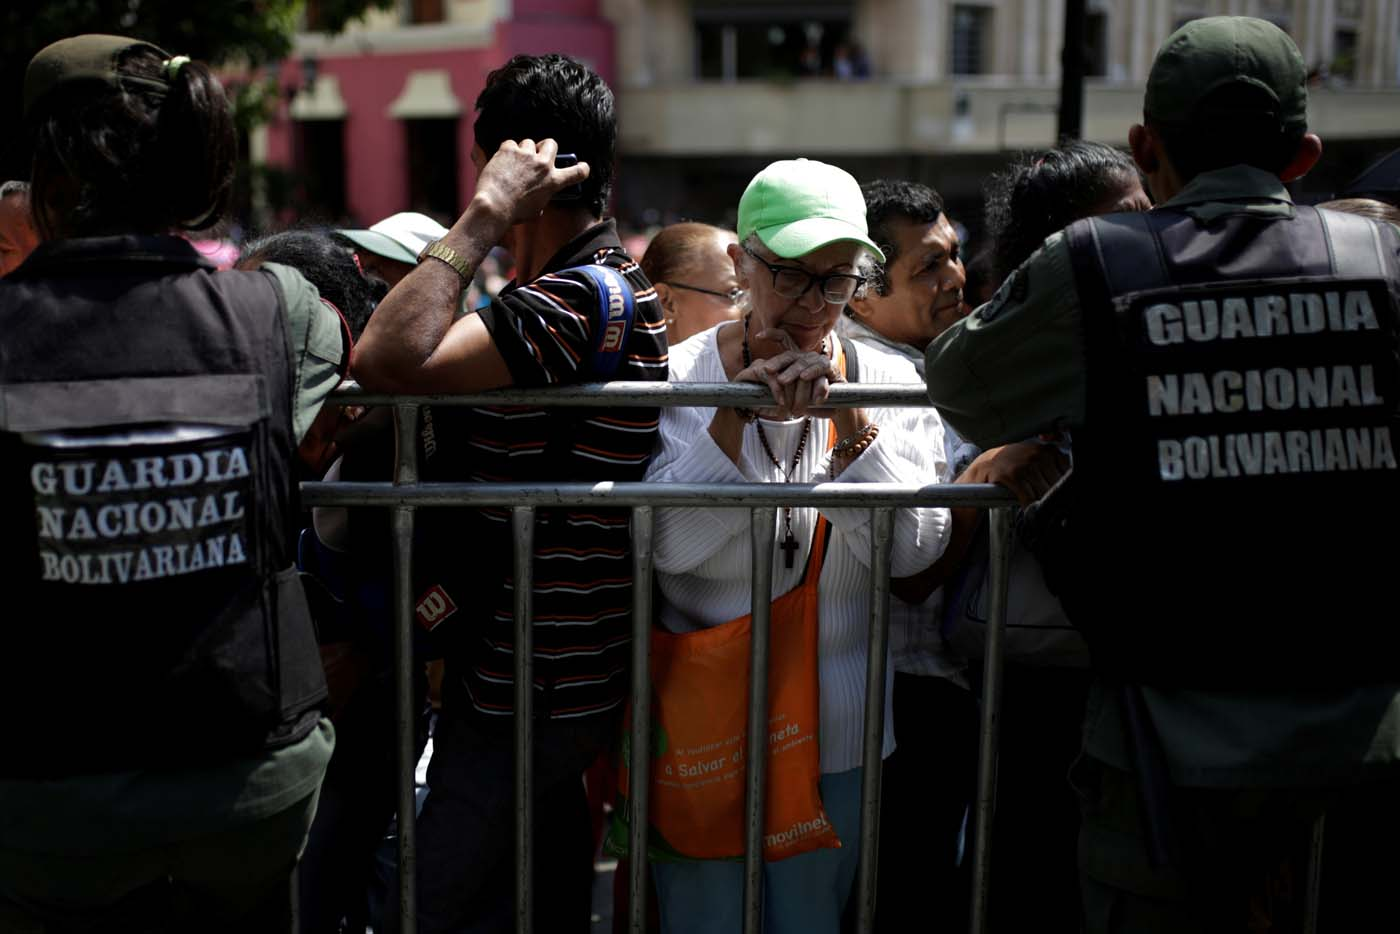 A woman waits to apply for a card that will register them for government social programmes, in front of Venezuelan National Guards, in Caracas, Venezuela January 20, 2017. REUTERS/Marco Bello